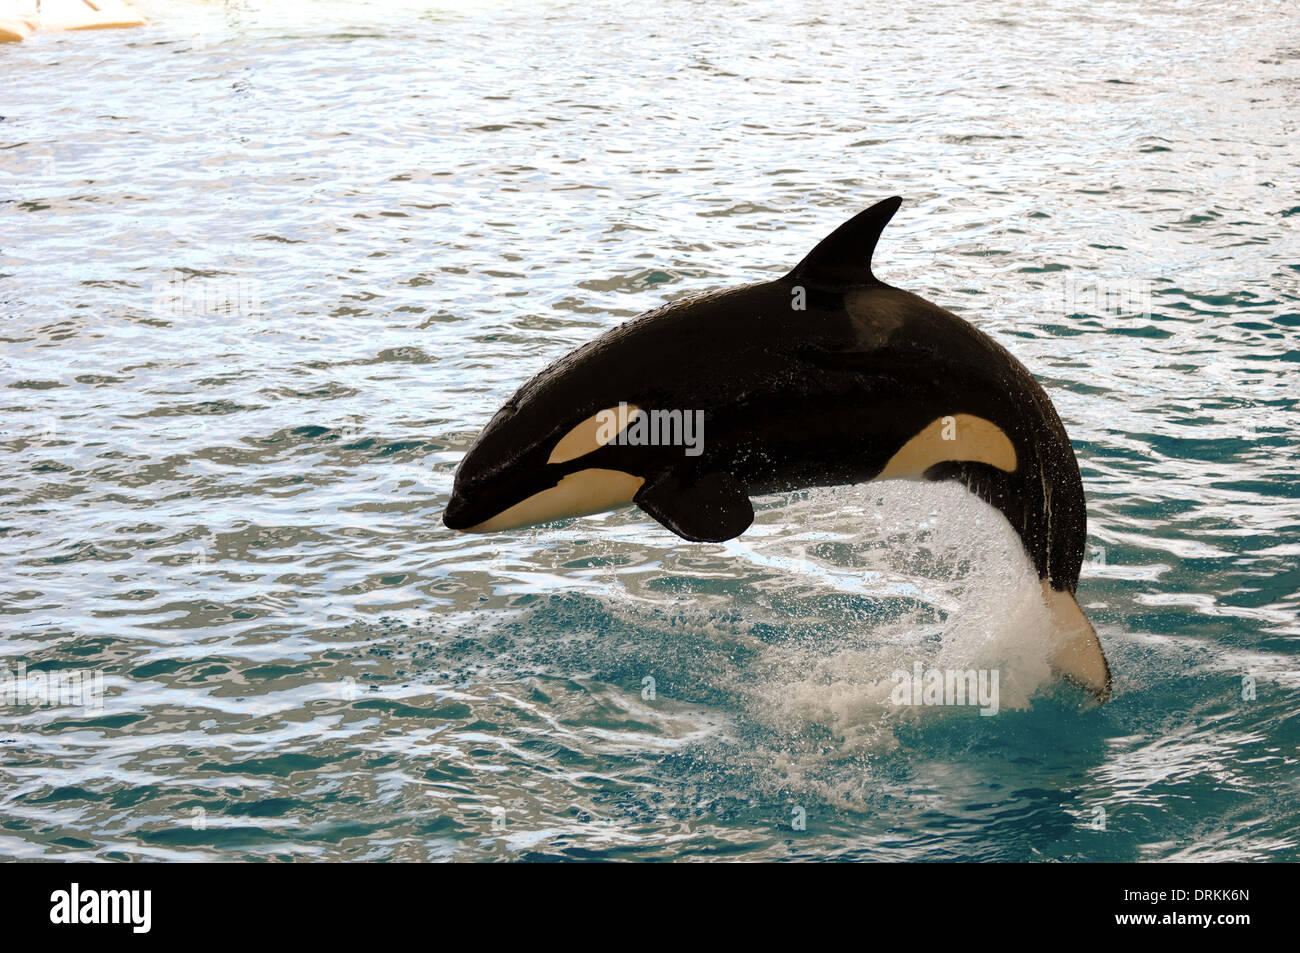 Killer whale is jumping in the water - Stock Image